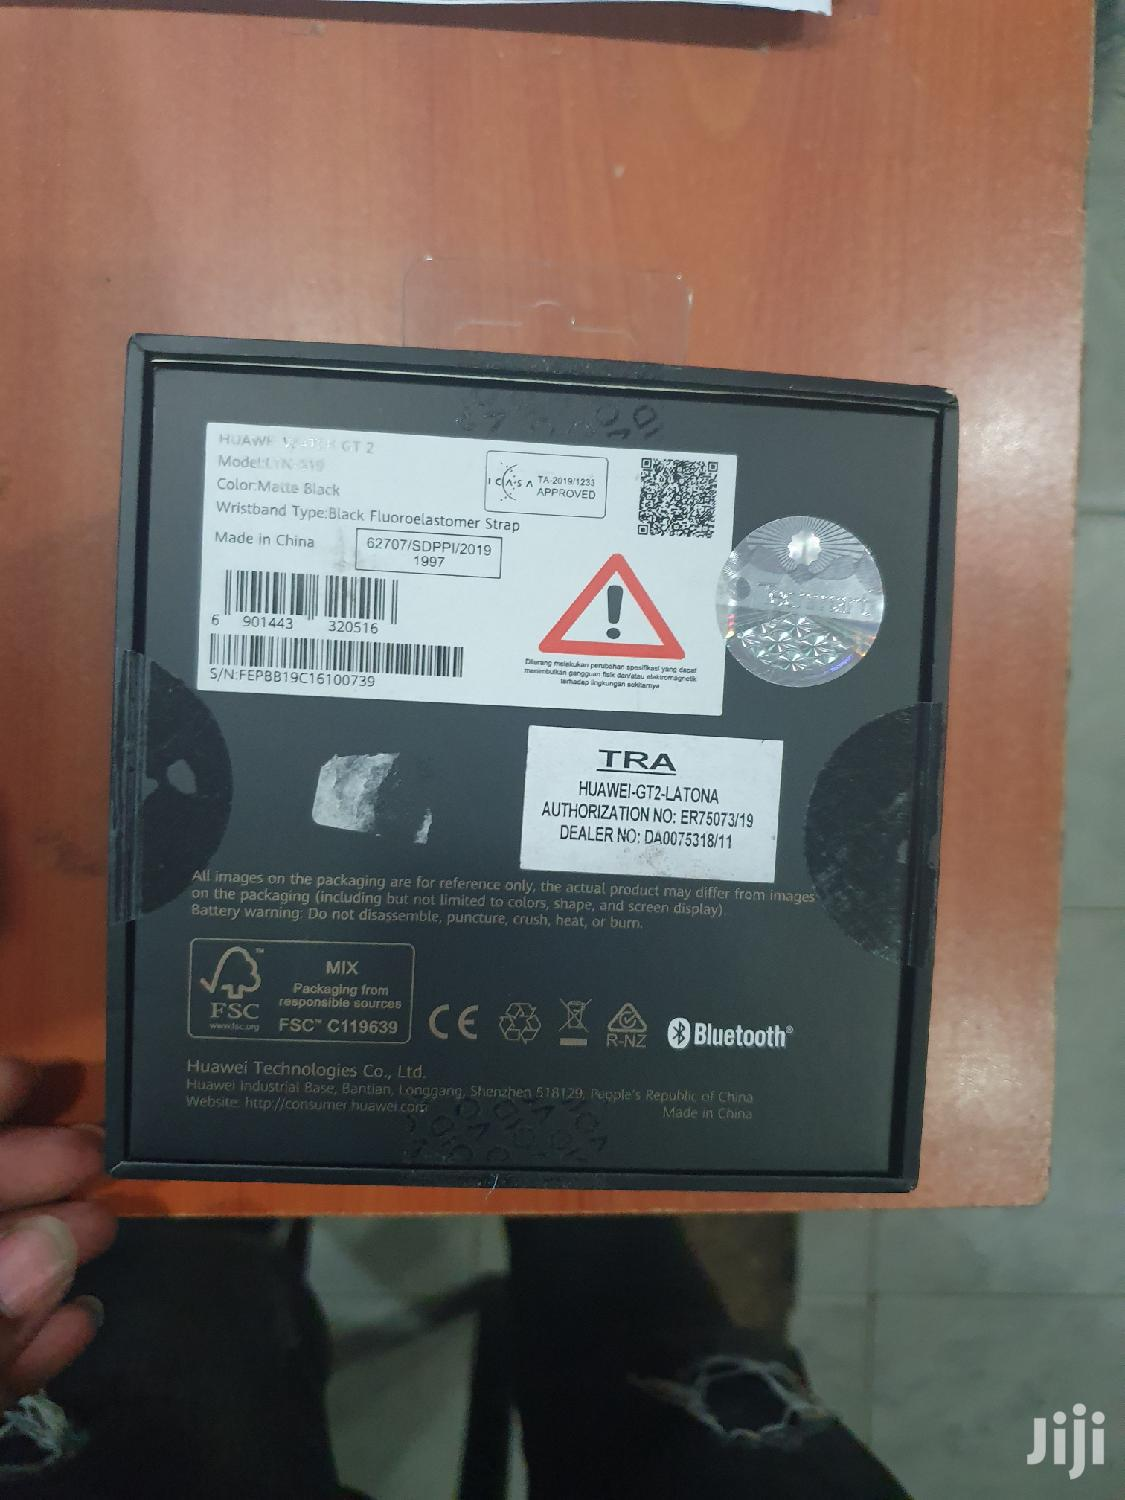 Huawei Watch Gt2 | Smart Watches & Trackers for sale in Nairobi Central, Nairobi, Kenya